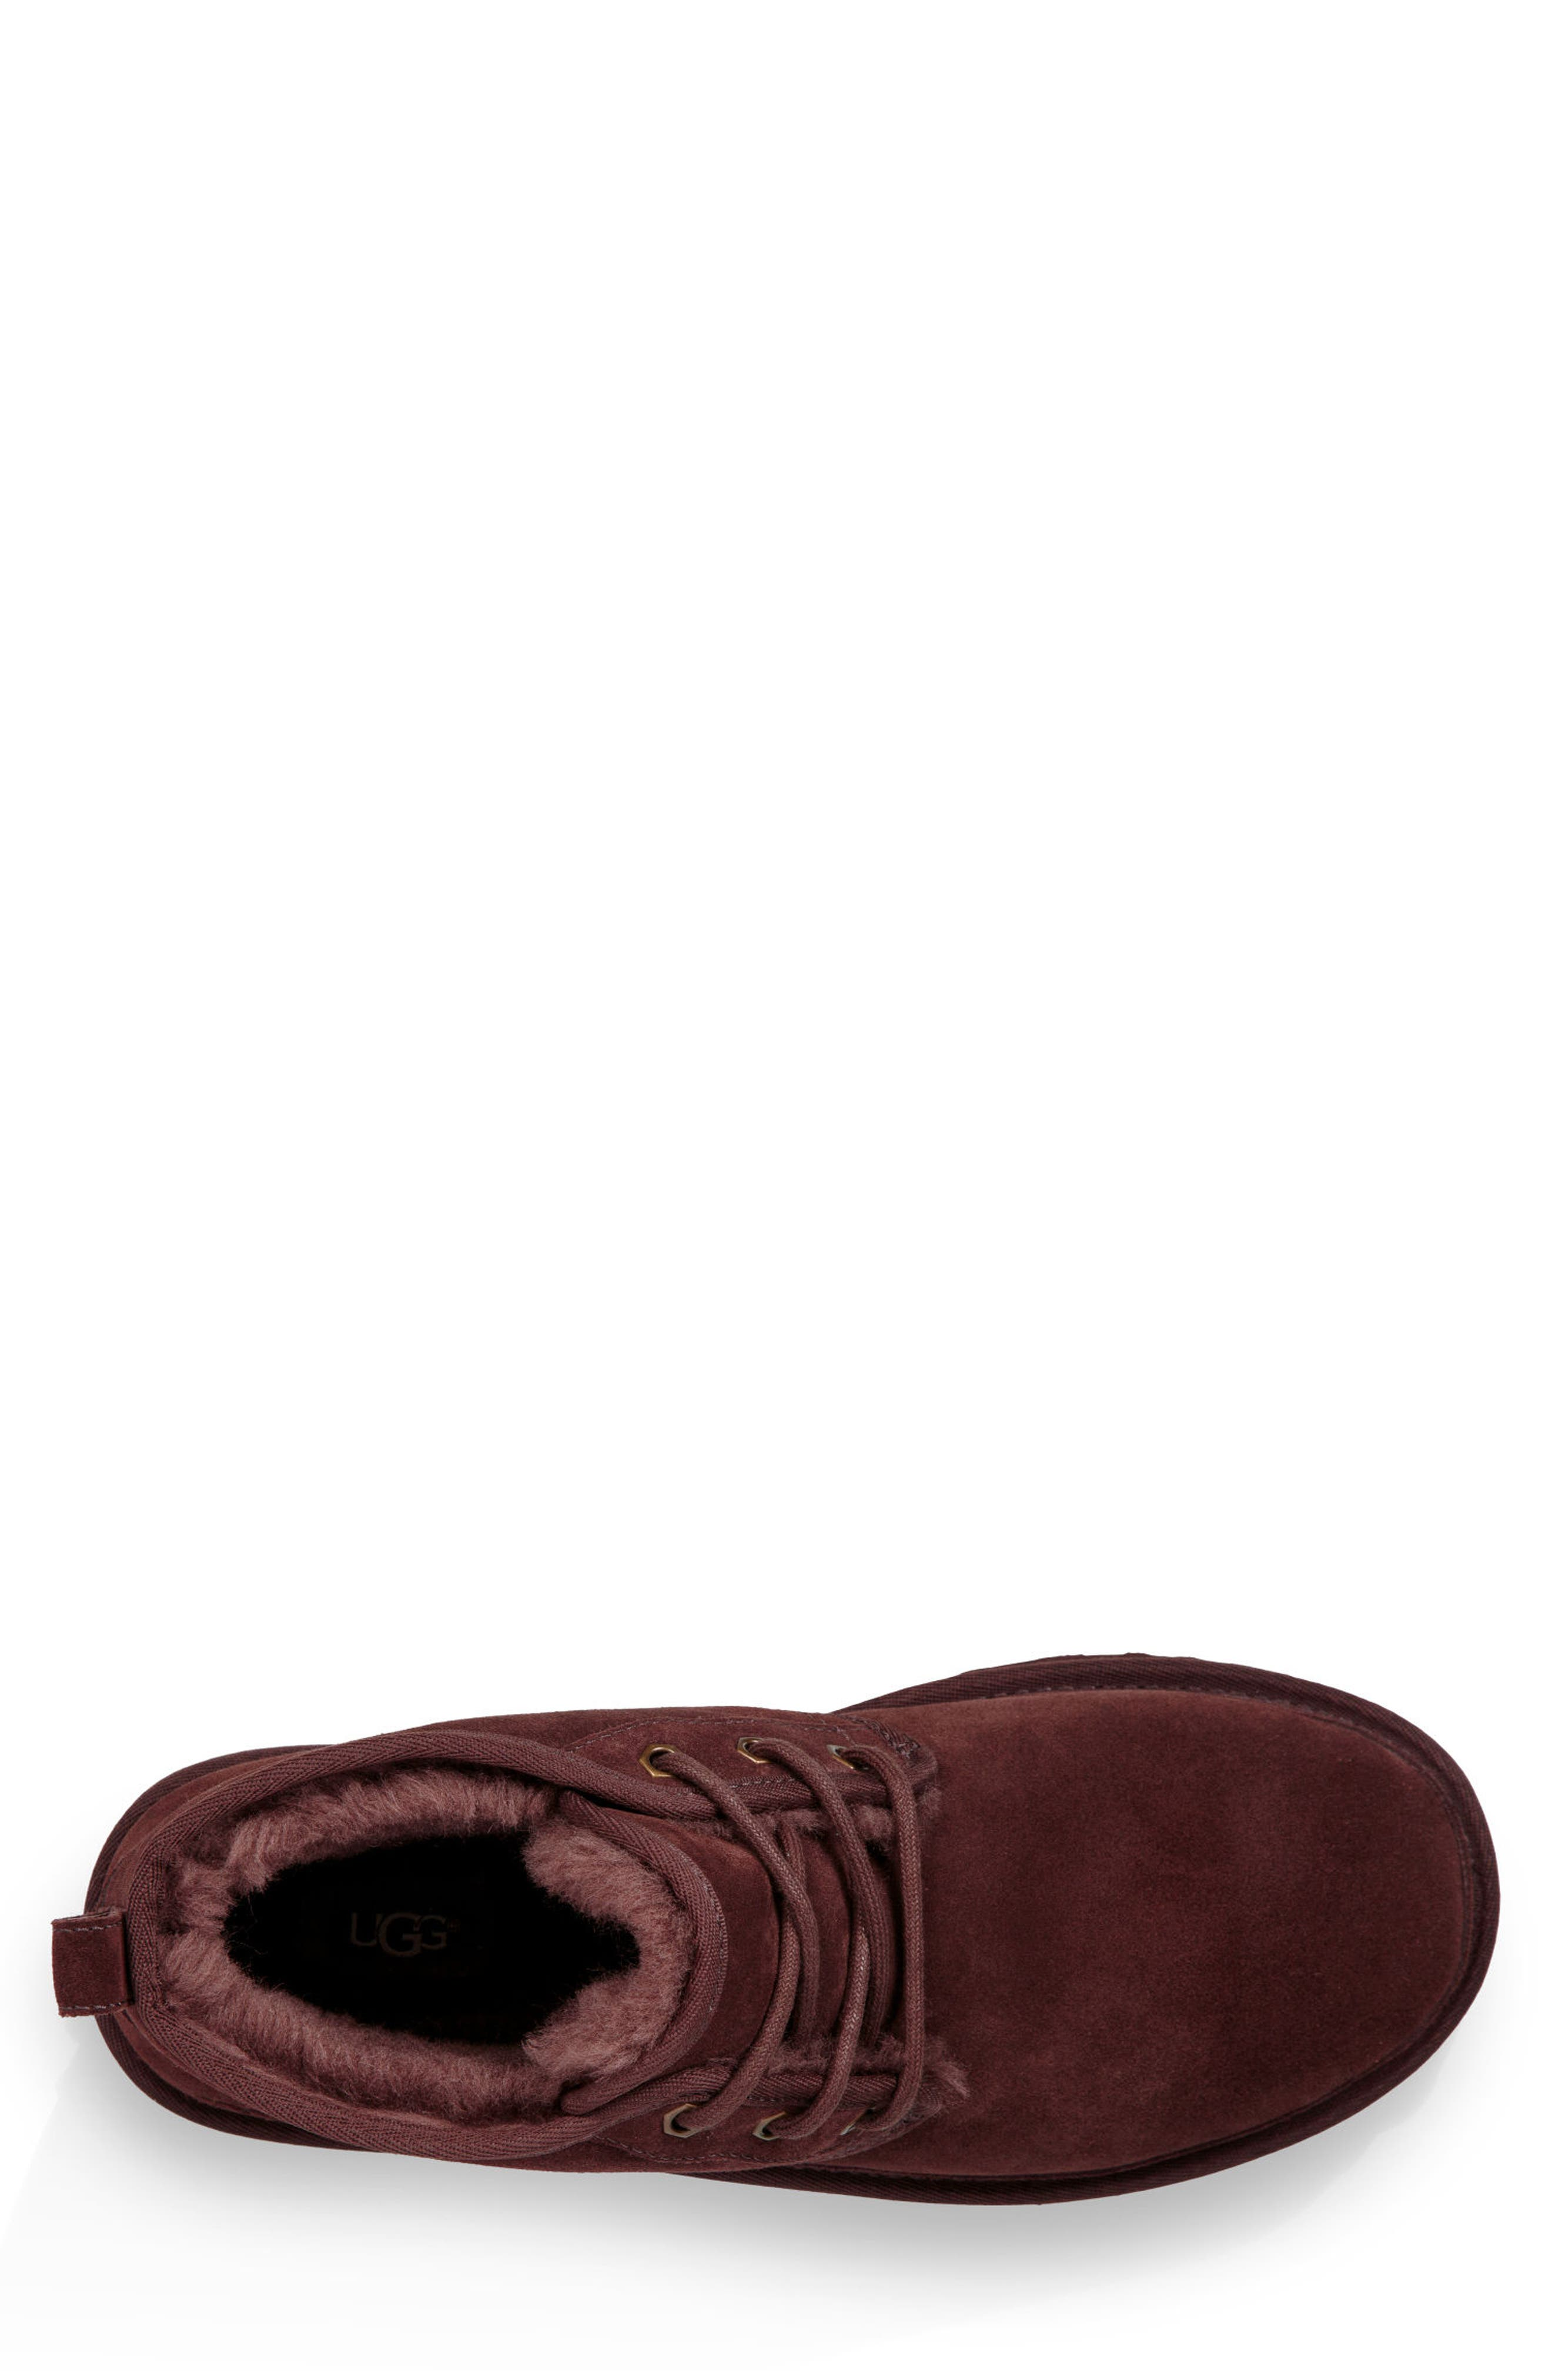 Neumel Chukka Boot,                             Alternate thumbnail 4, color,                             ESPRESSO SUEDE